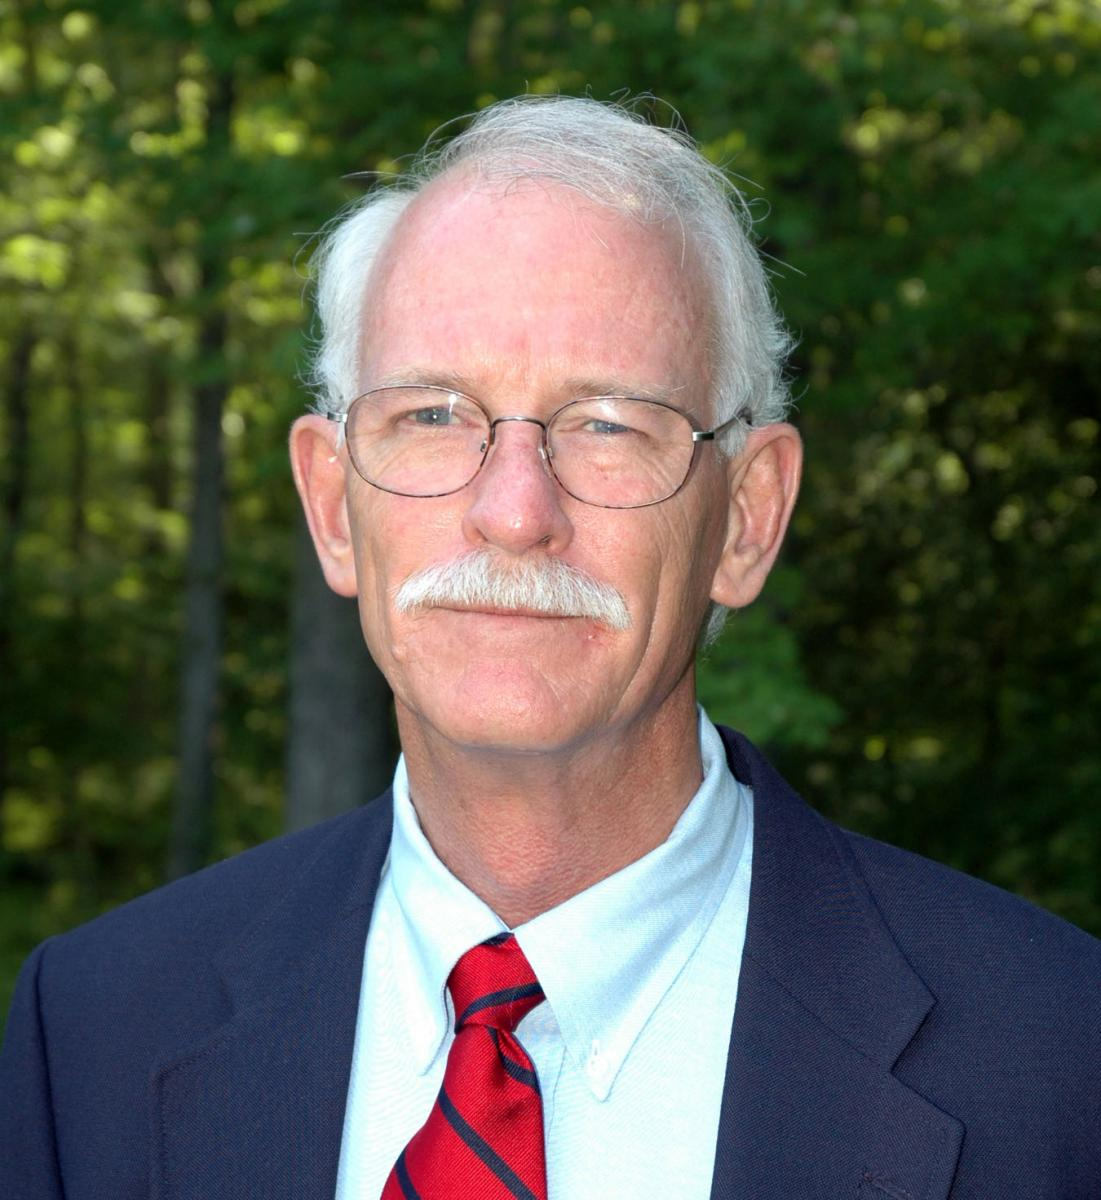 Tuck Hines in a navy suit, with white hair, mustache and glasses